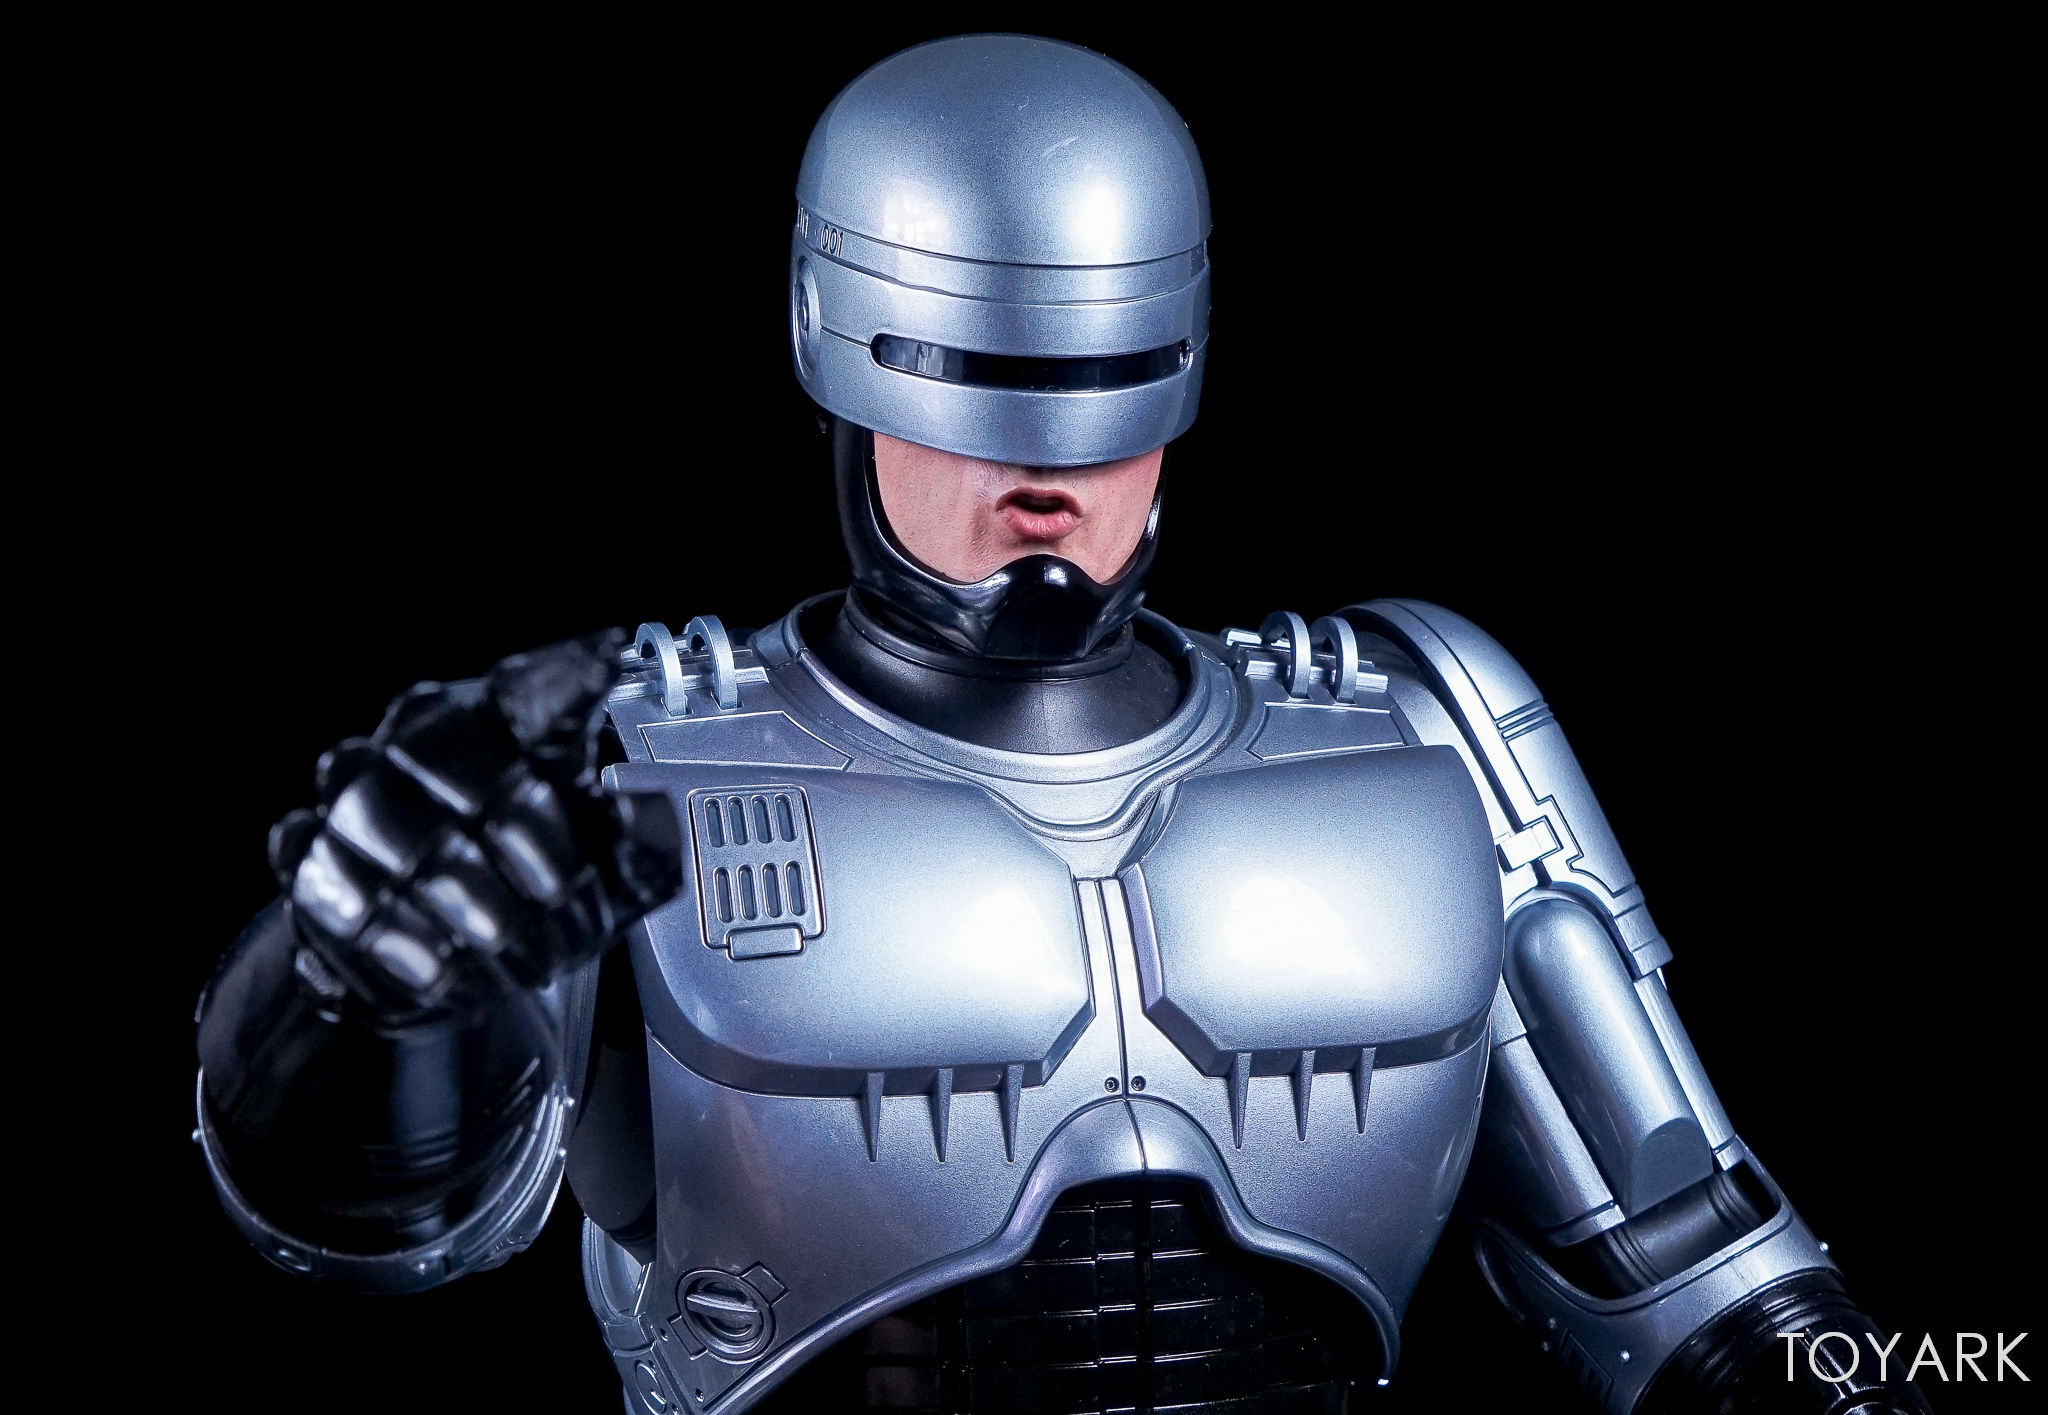 http://news.toyark.com/wp-content/uploads/sites/4/2017/07/Enterbay-Robocop-3-HD-Masterpiece-009.jpg